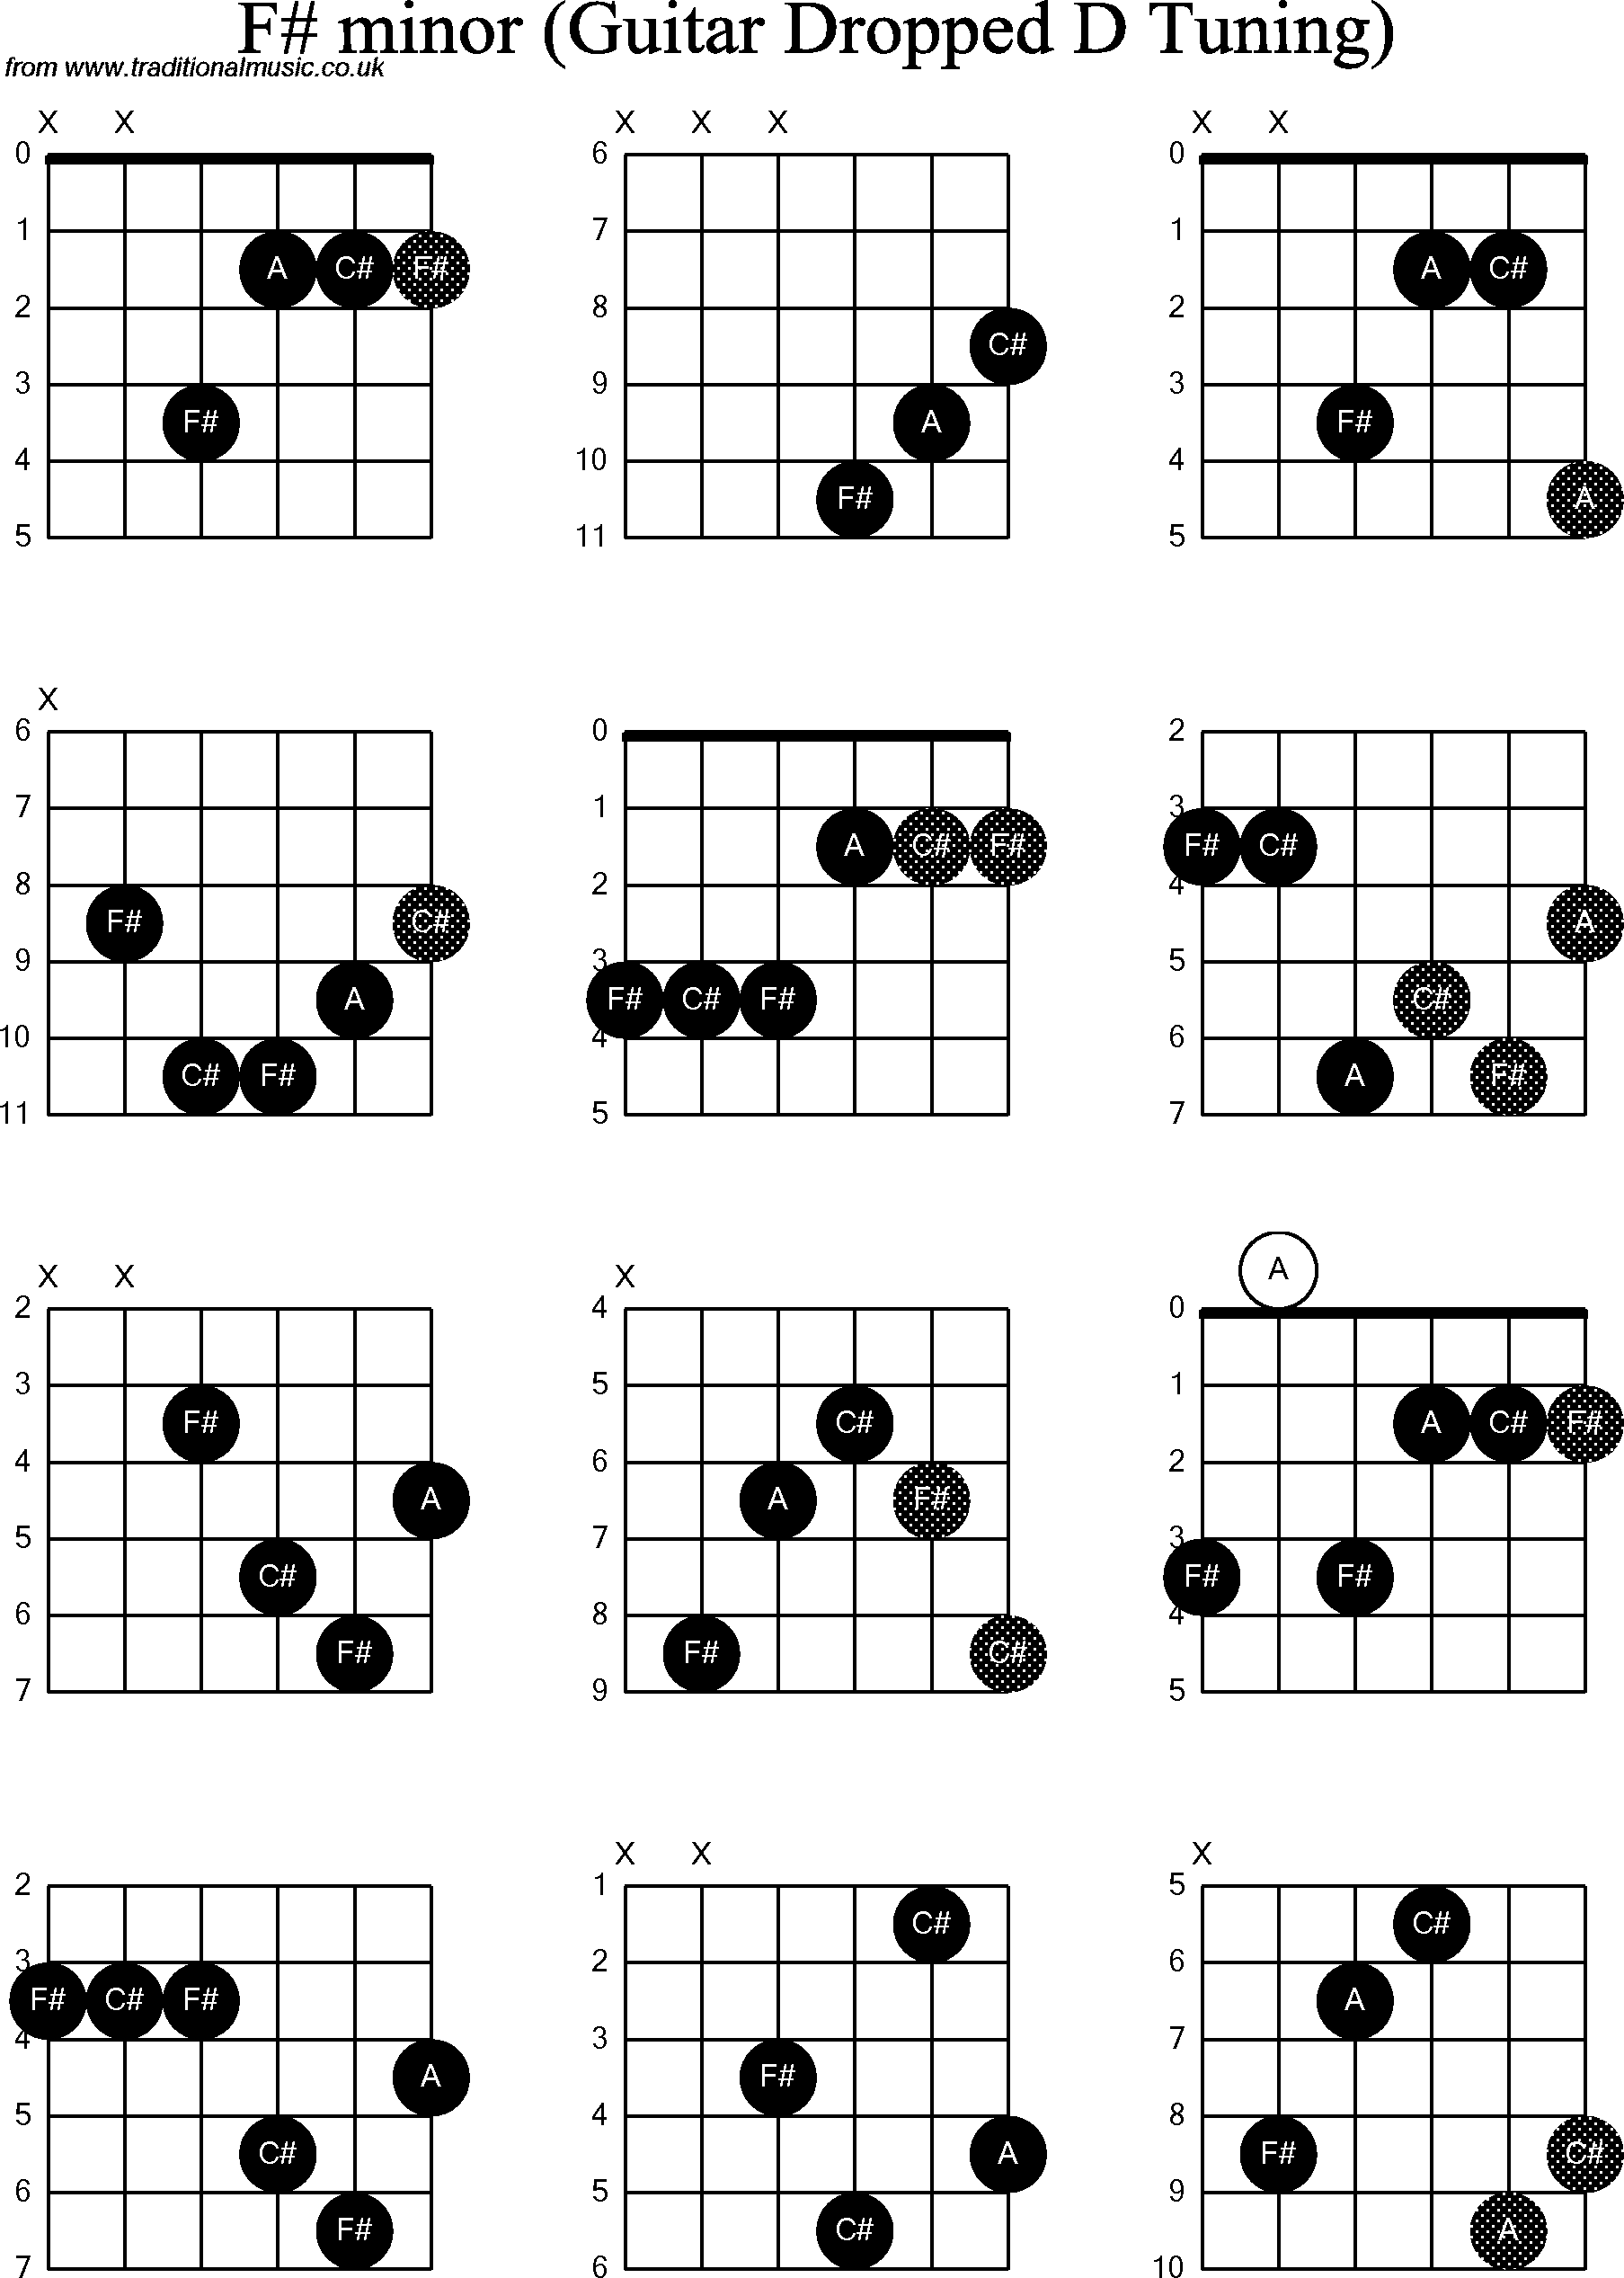 61 Guitar Chord F Sharp Minor 7 Flat 5 Flat Guitar Chord Minor 5 F